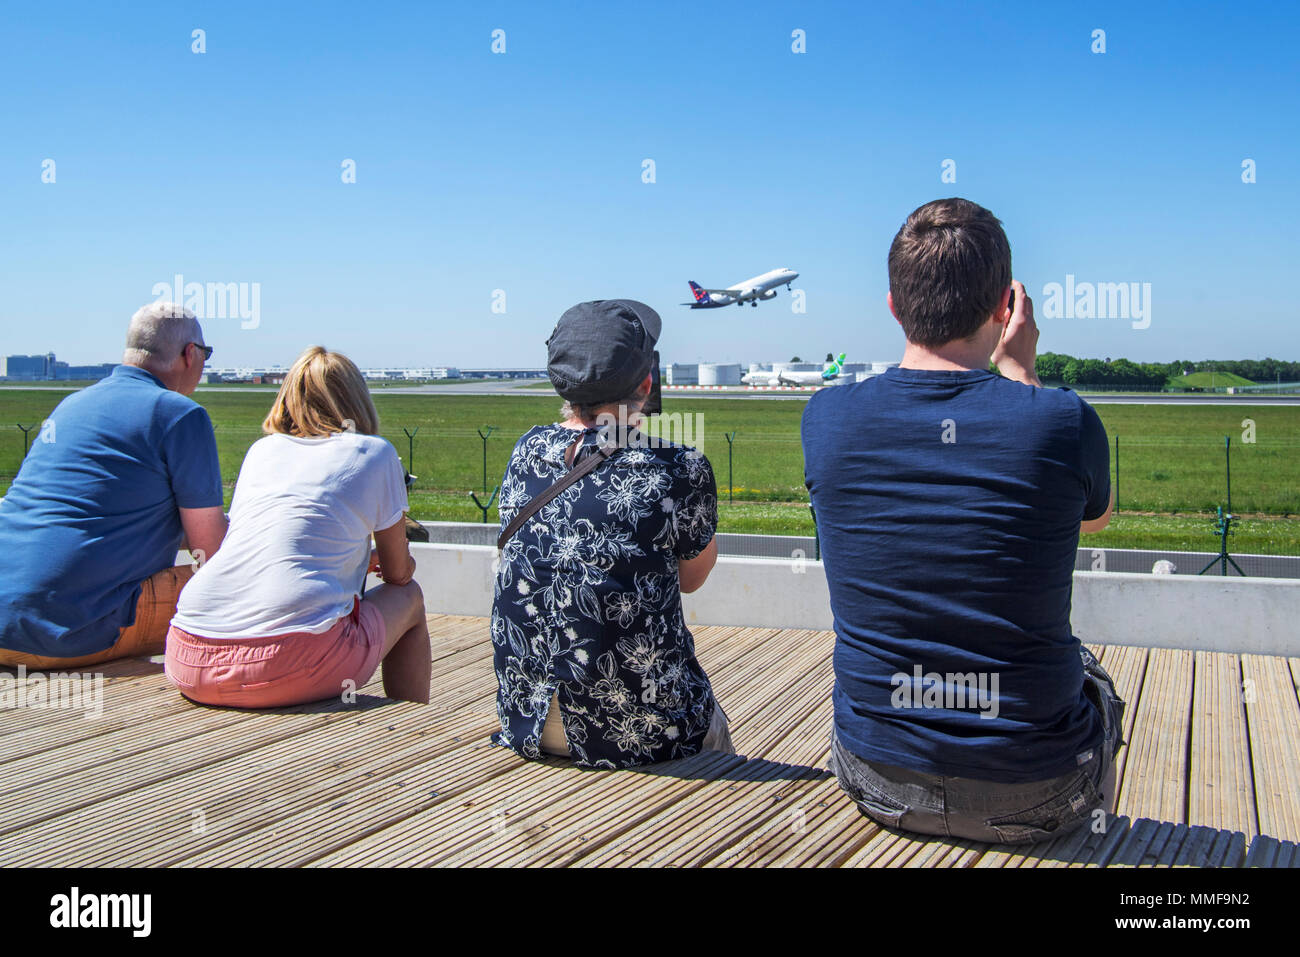 Plane spotters on aircraft spotting platform watching airplane from Brussels Airlines taking off from runway at Brussels Airport, Zaventem, Belgium - Stock Image